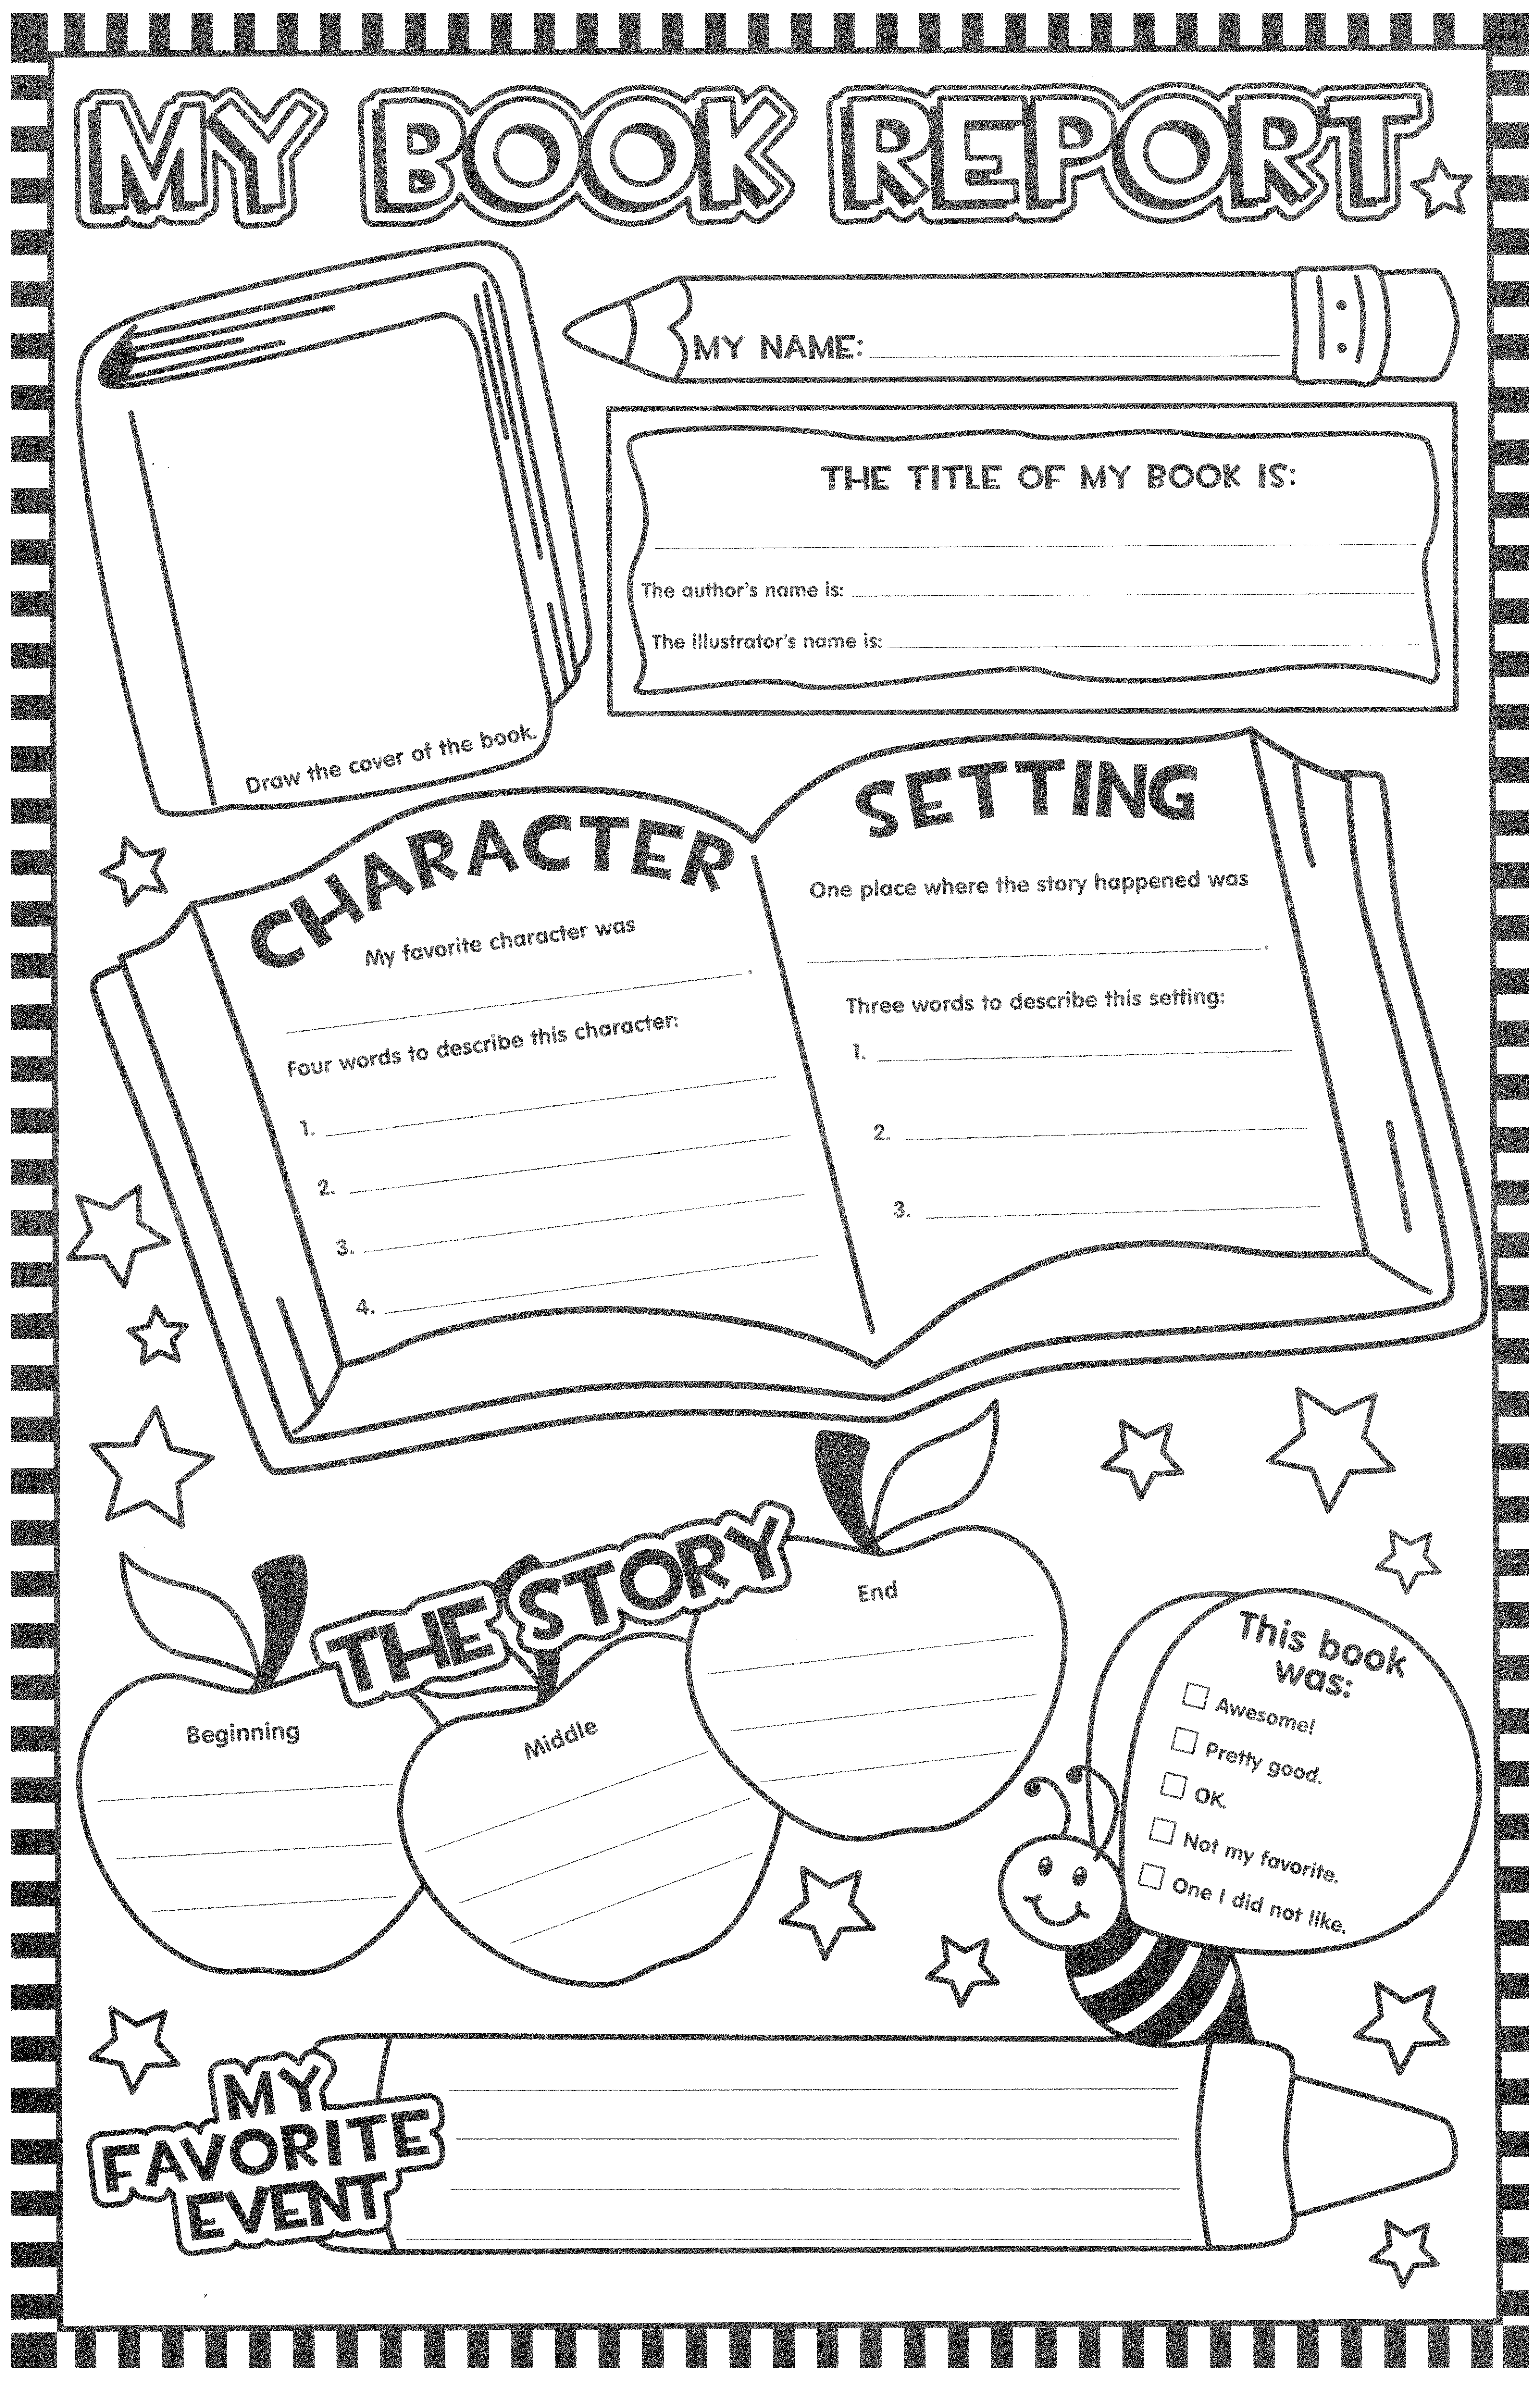 Book Report Poster (Updated)   Squarehead Teachers - Free Printable Book Report Forms For Elementary Students